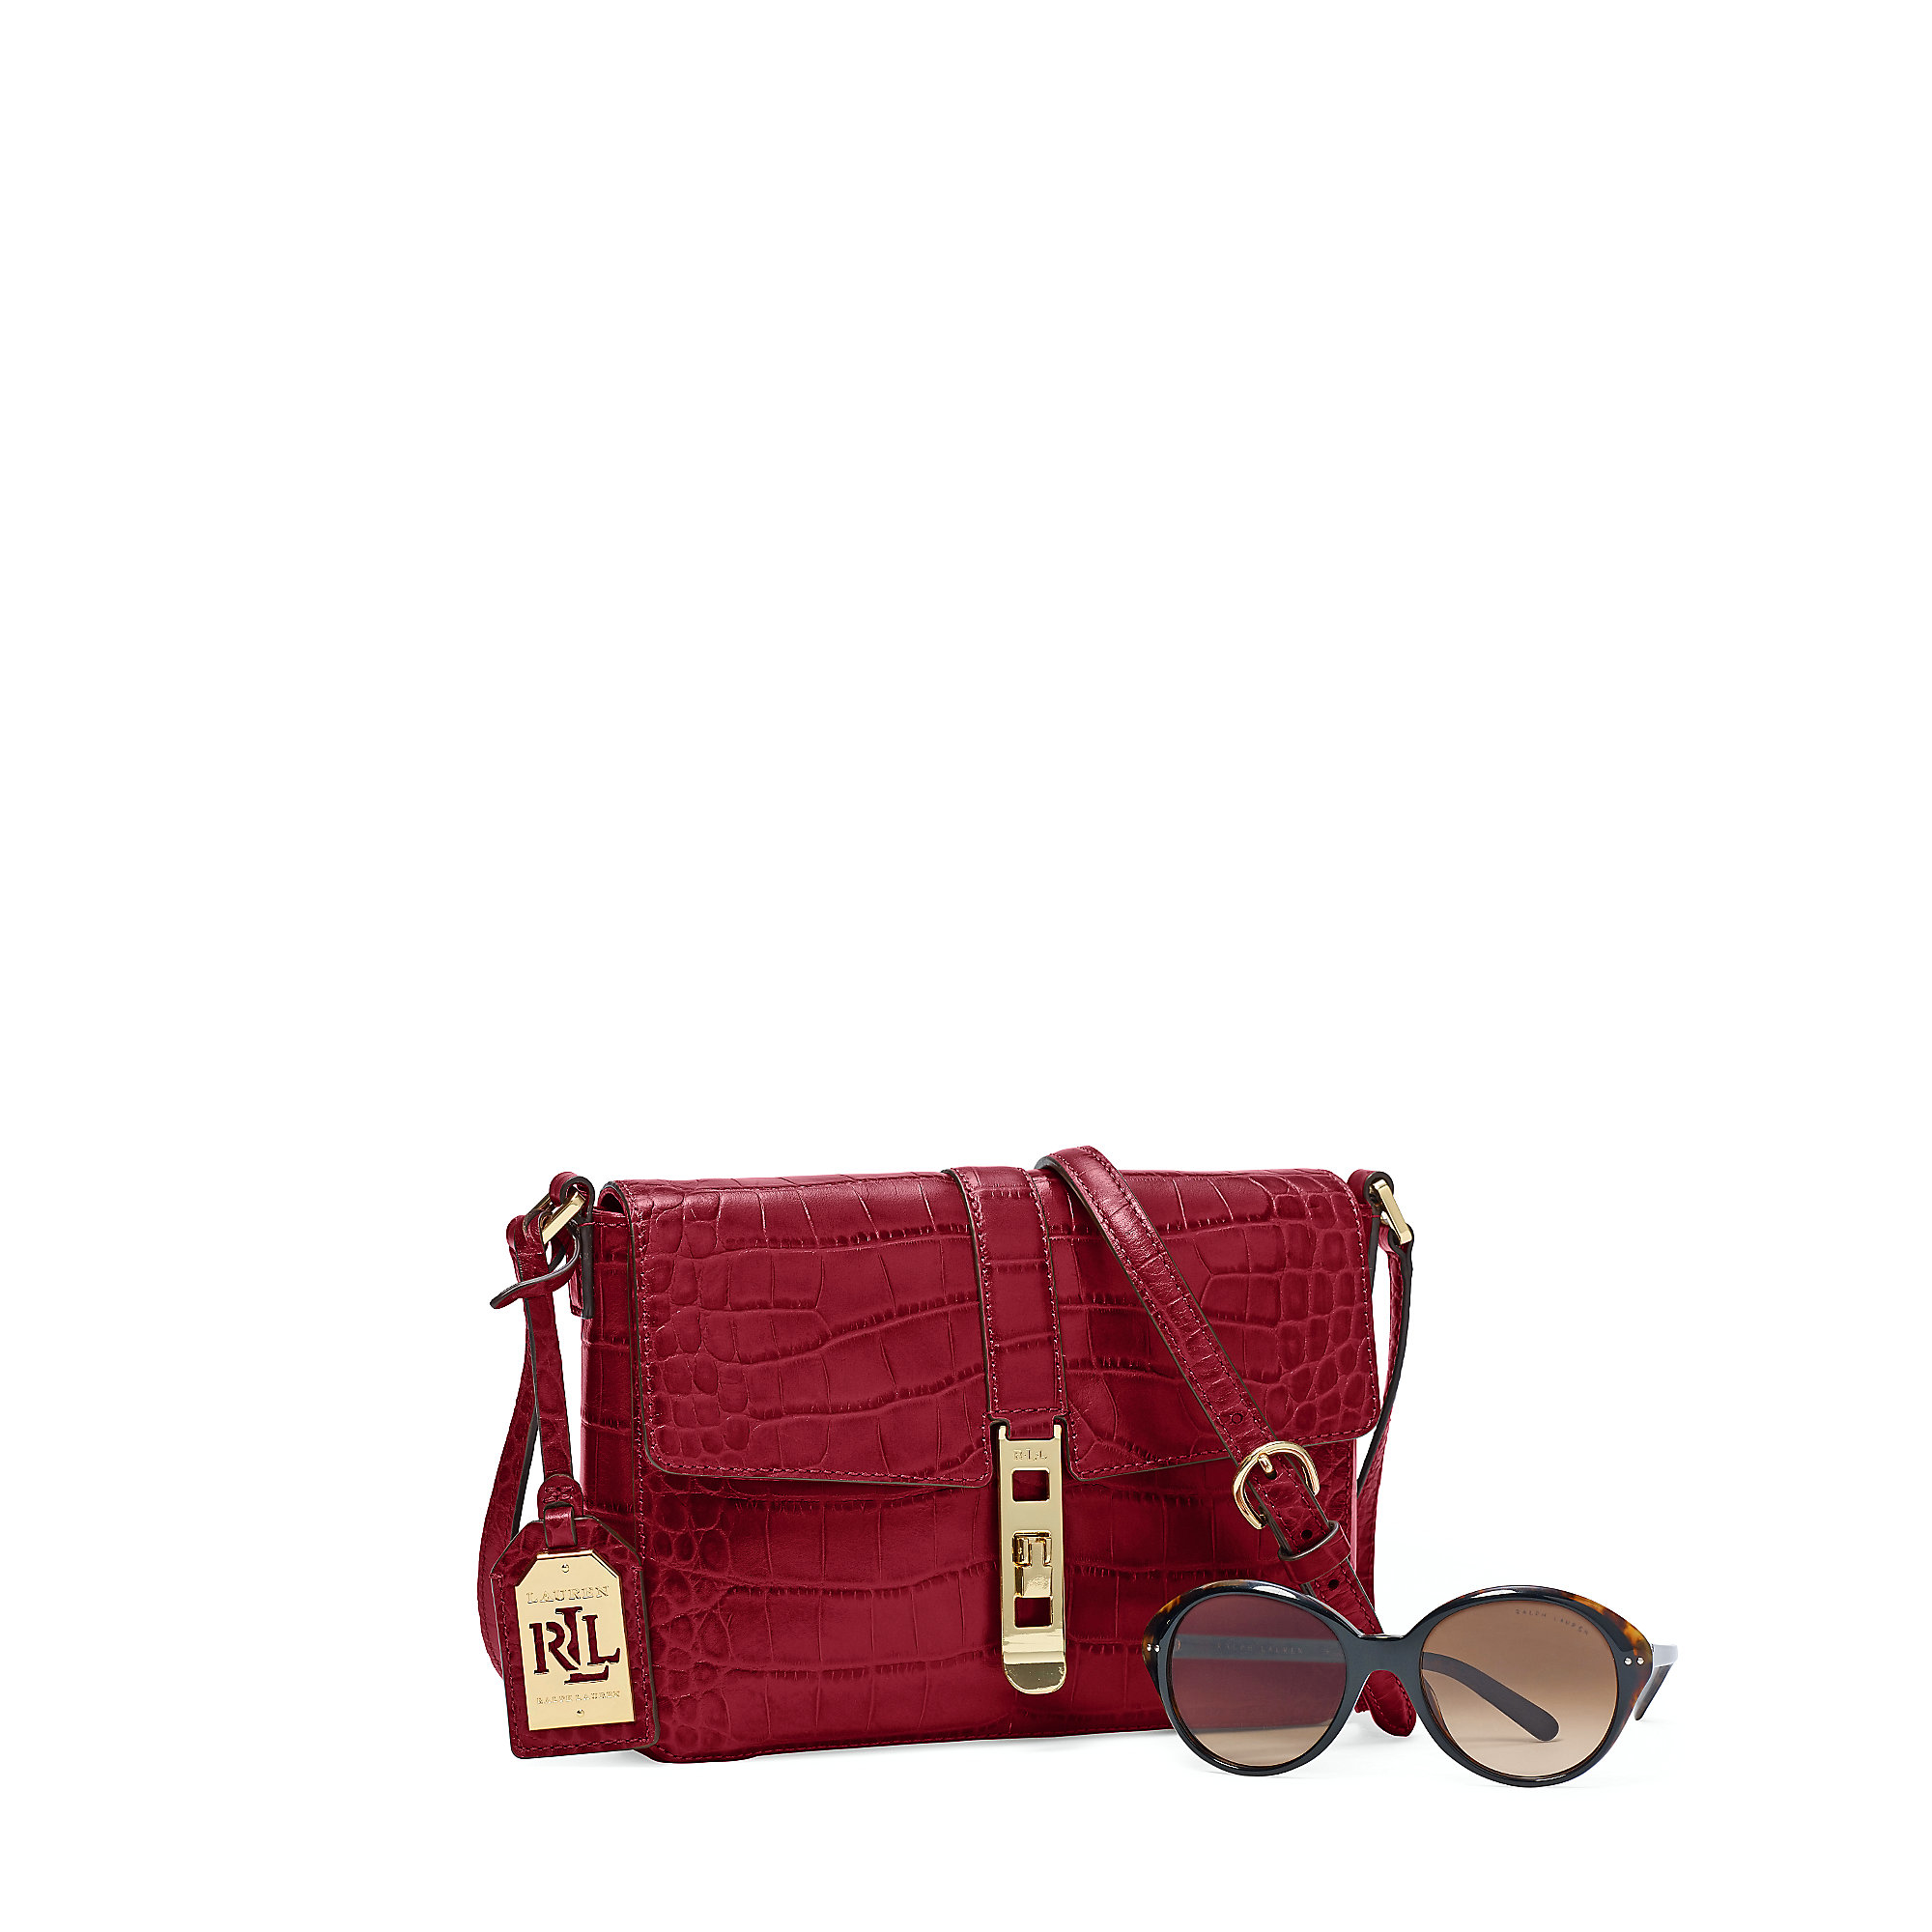 d4cf1cd3d4 Lyst - Ralph Lauren Darwin Leather Cross-body Bag in Red